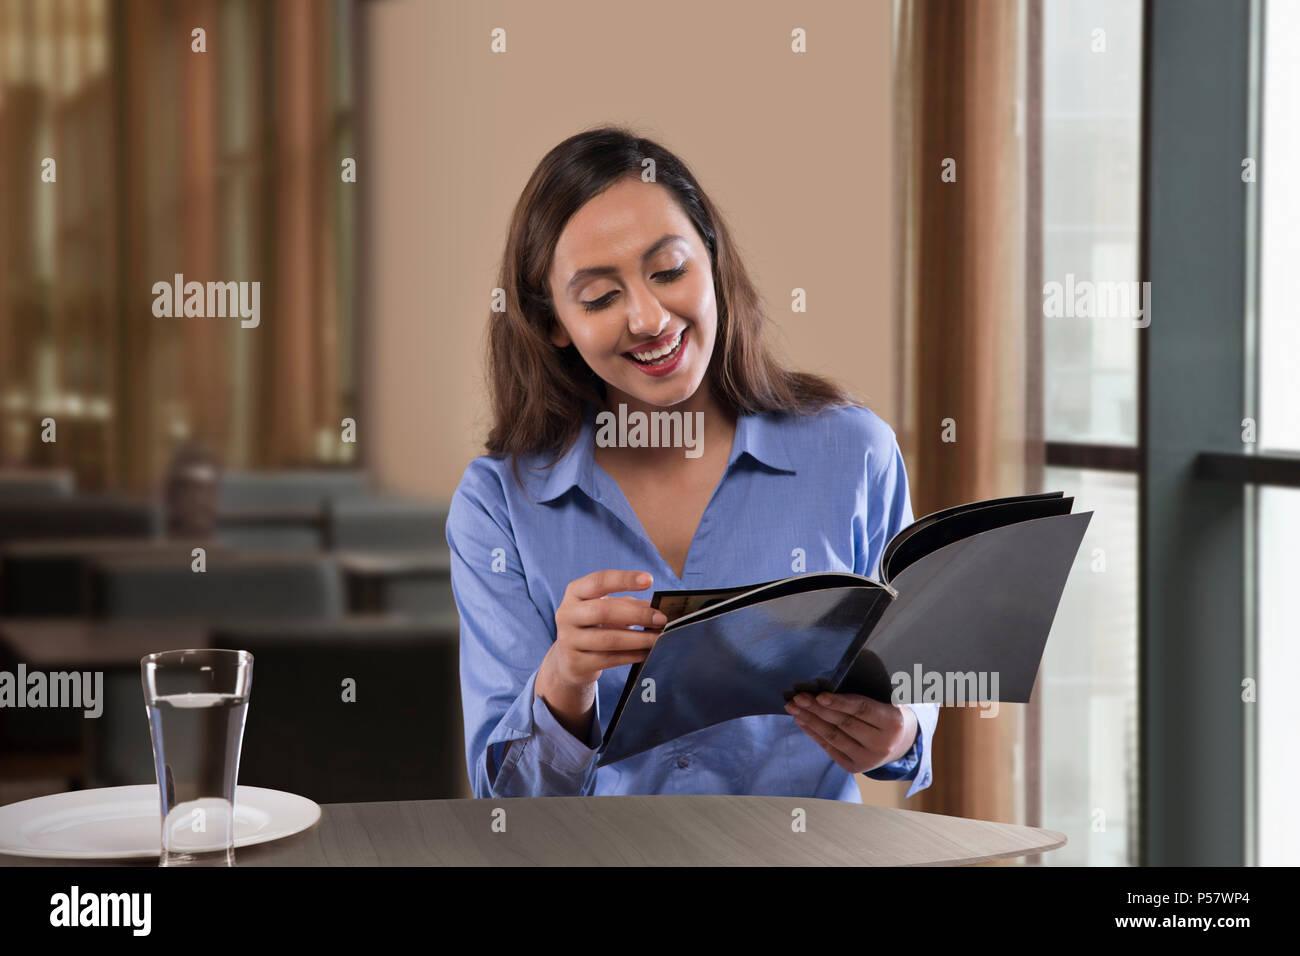 Businesswoman reading magazine on table - Stock Image